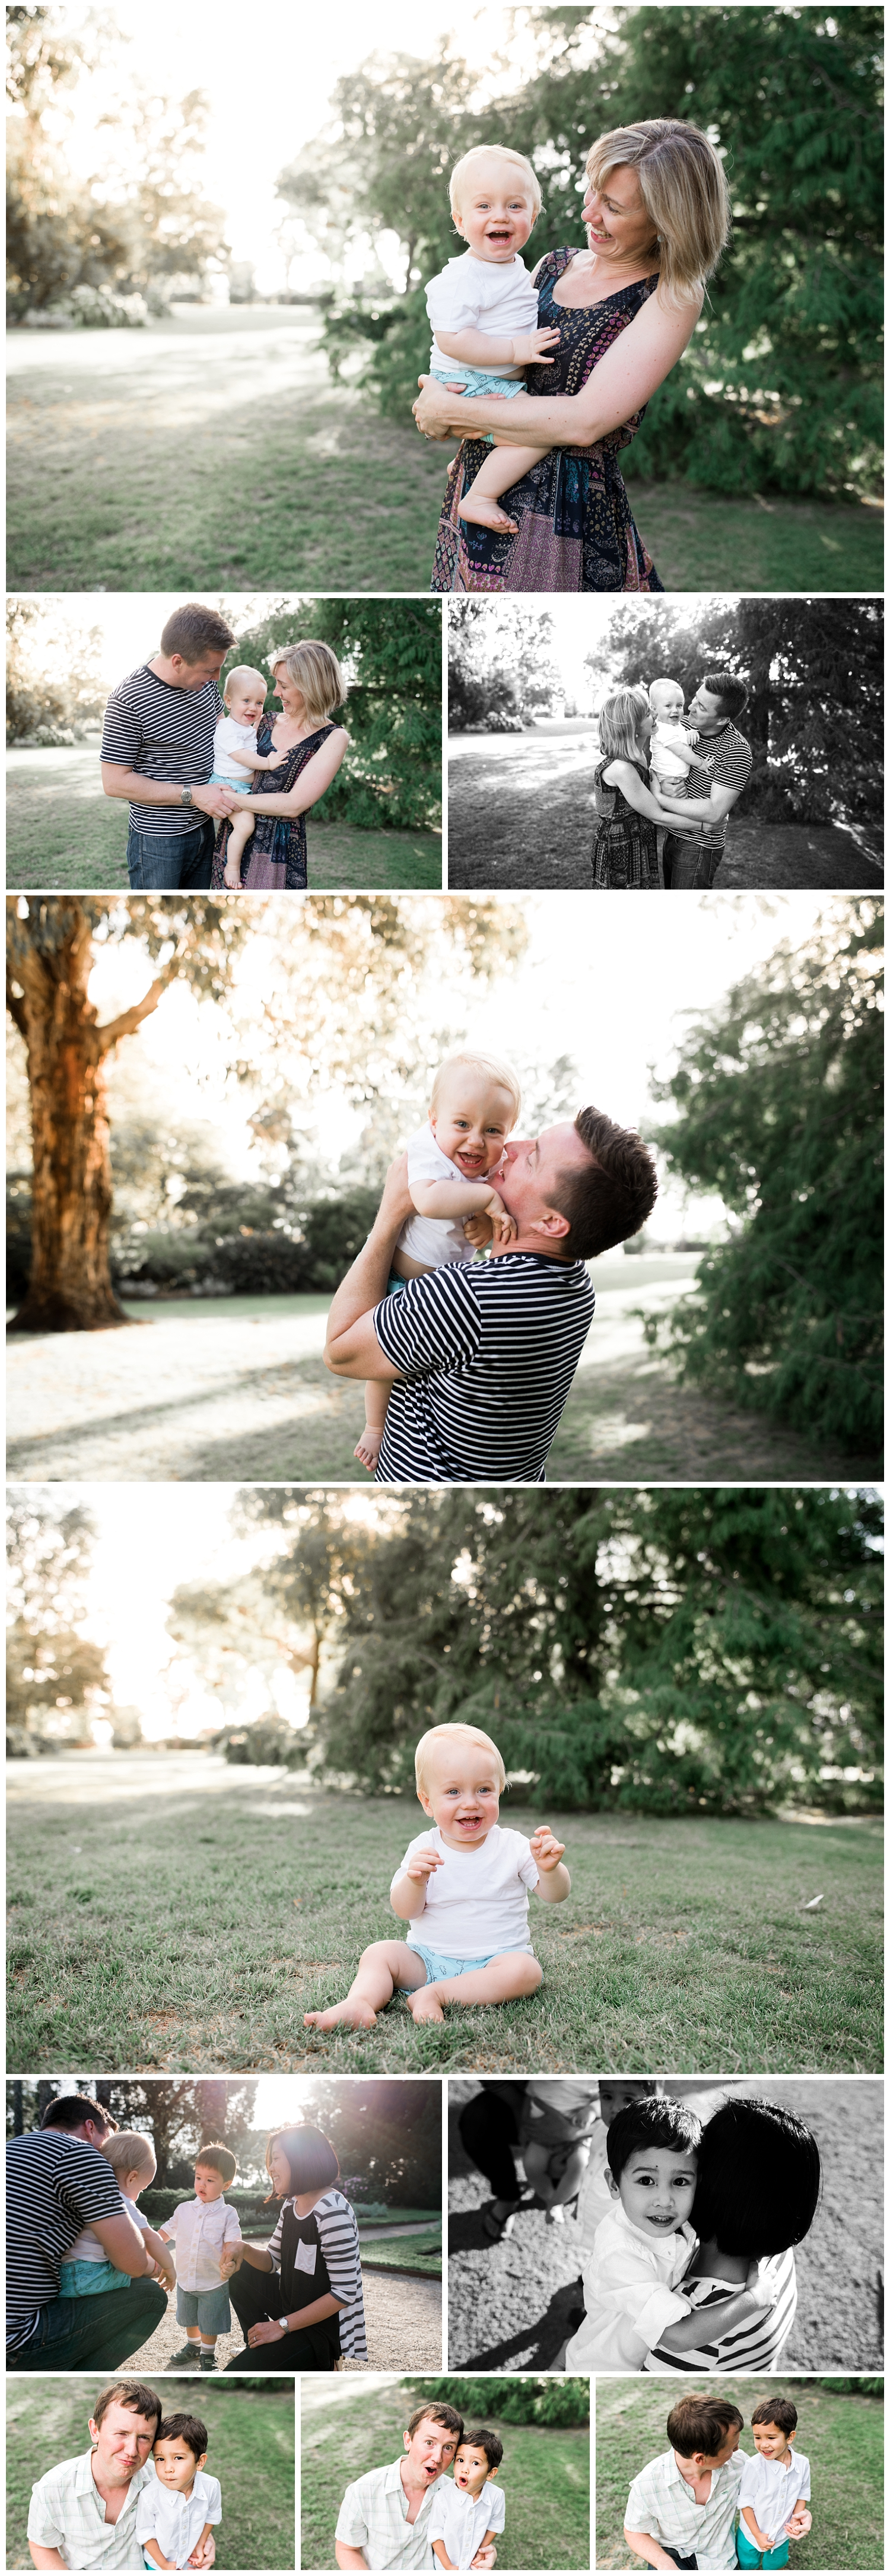 Williamstown extended family photographer